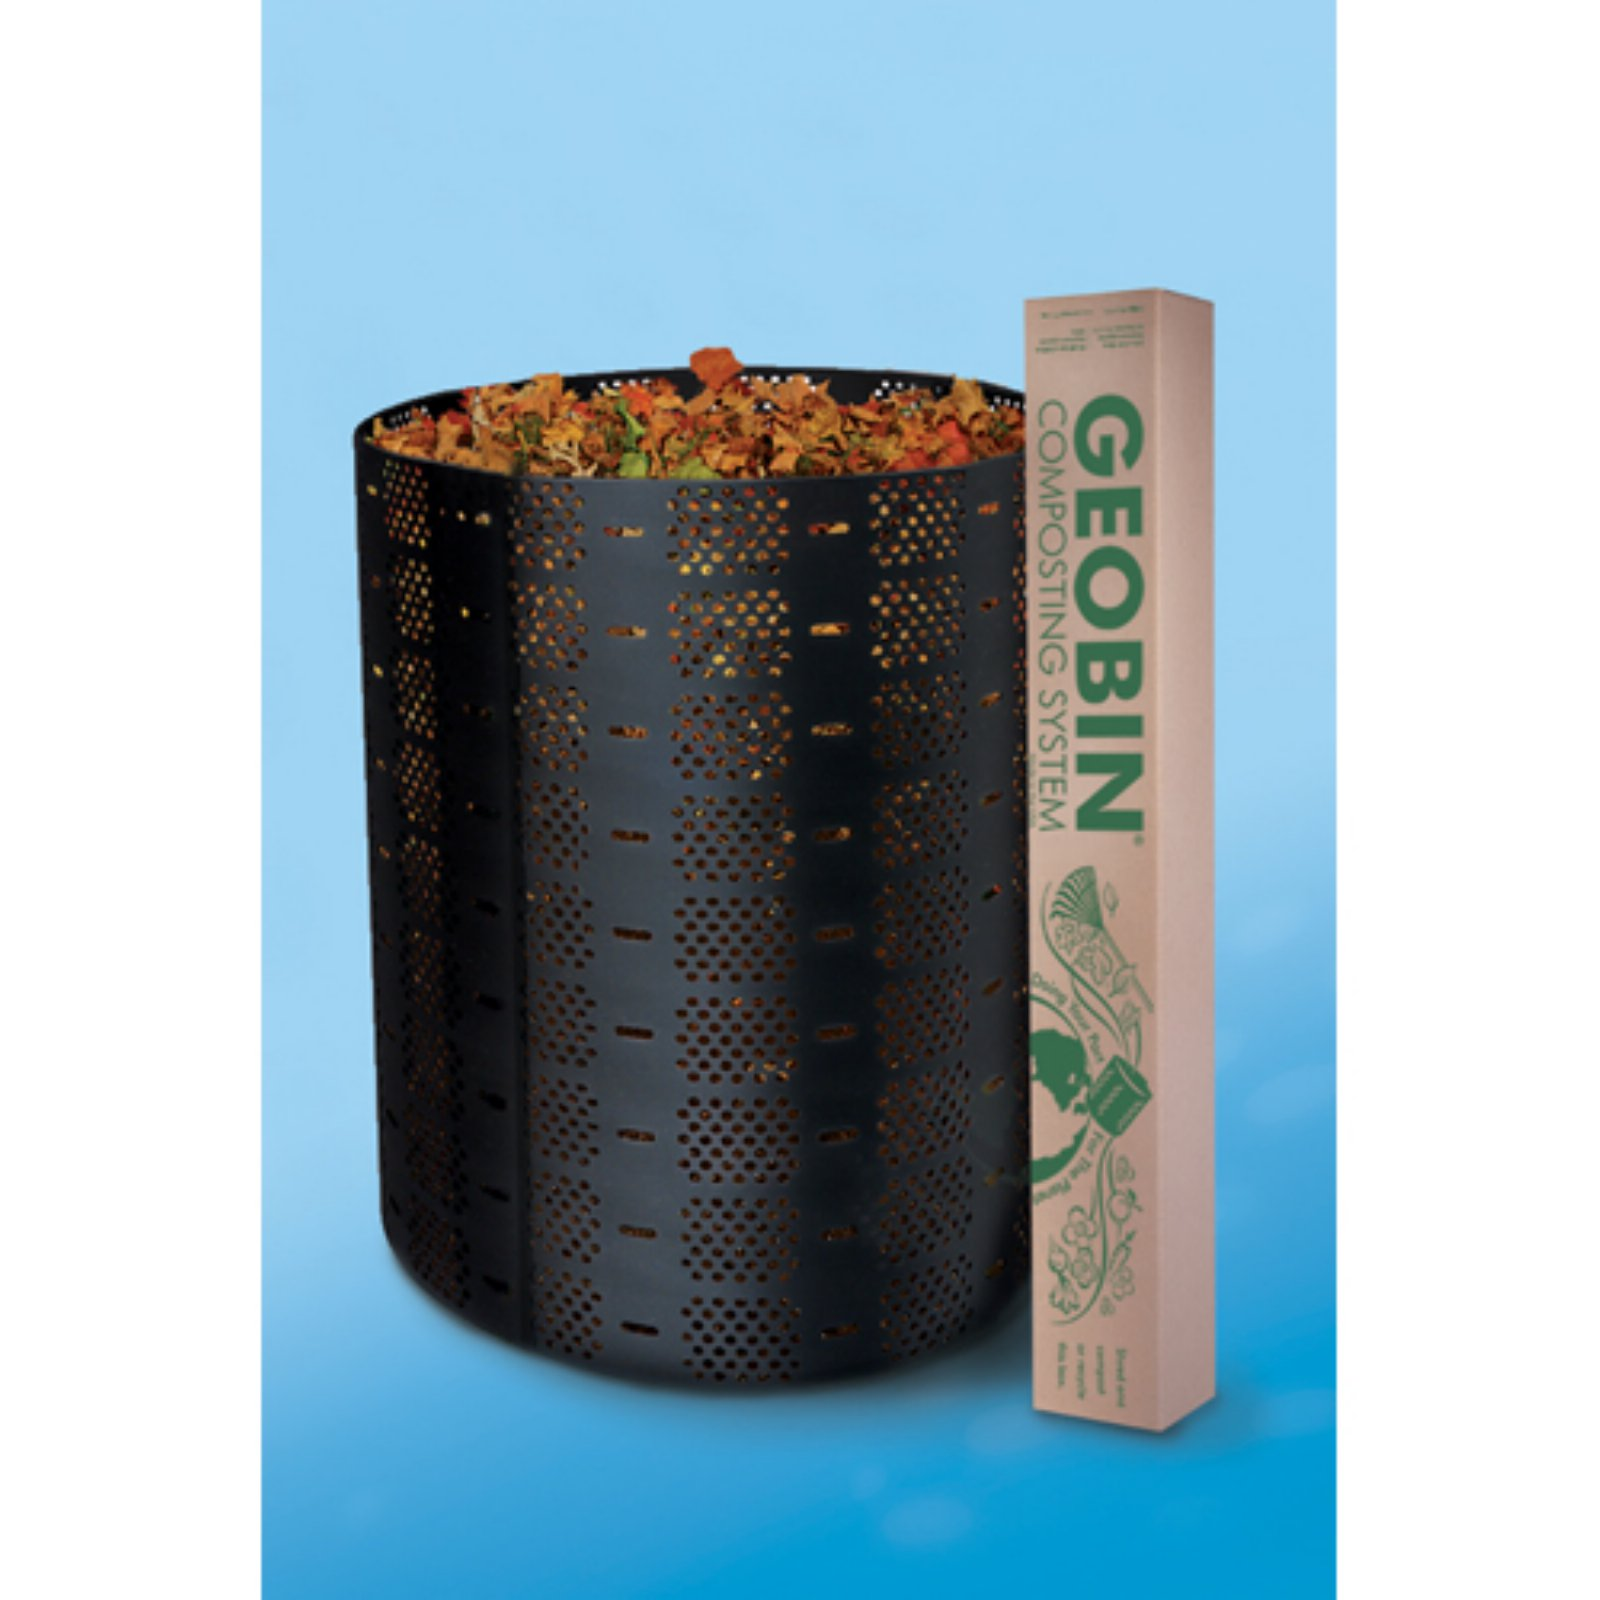 Geobin Expandable Compost Bin by Reynolds Presto Products Inc.